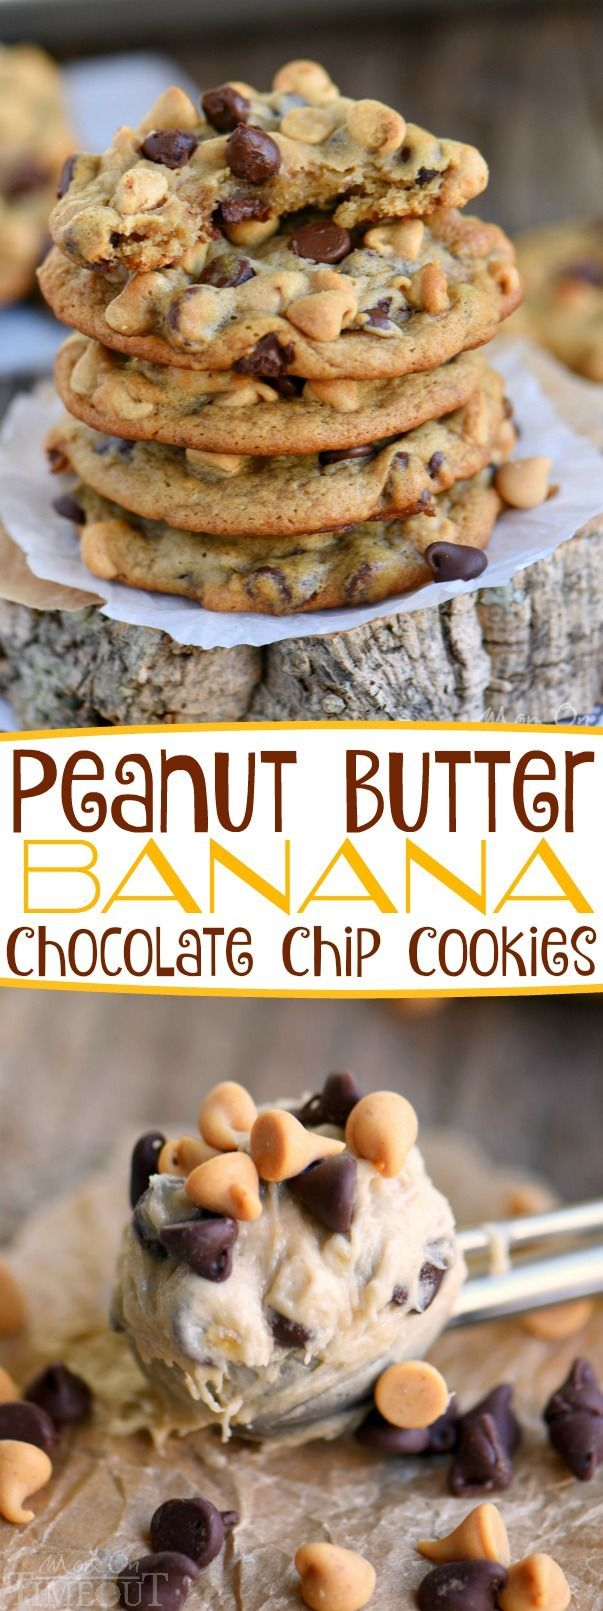 Got ripe bananas? These easy Peanut Butter Banana Chocolate Chip Cookies are WAY more fun than making banana bread and so delicious too! Super soft and absolutely amazing! // Mom On Timeout(Butter Cookies)